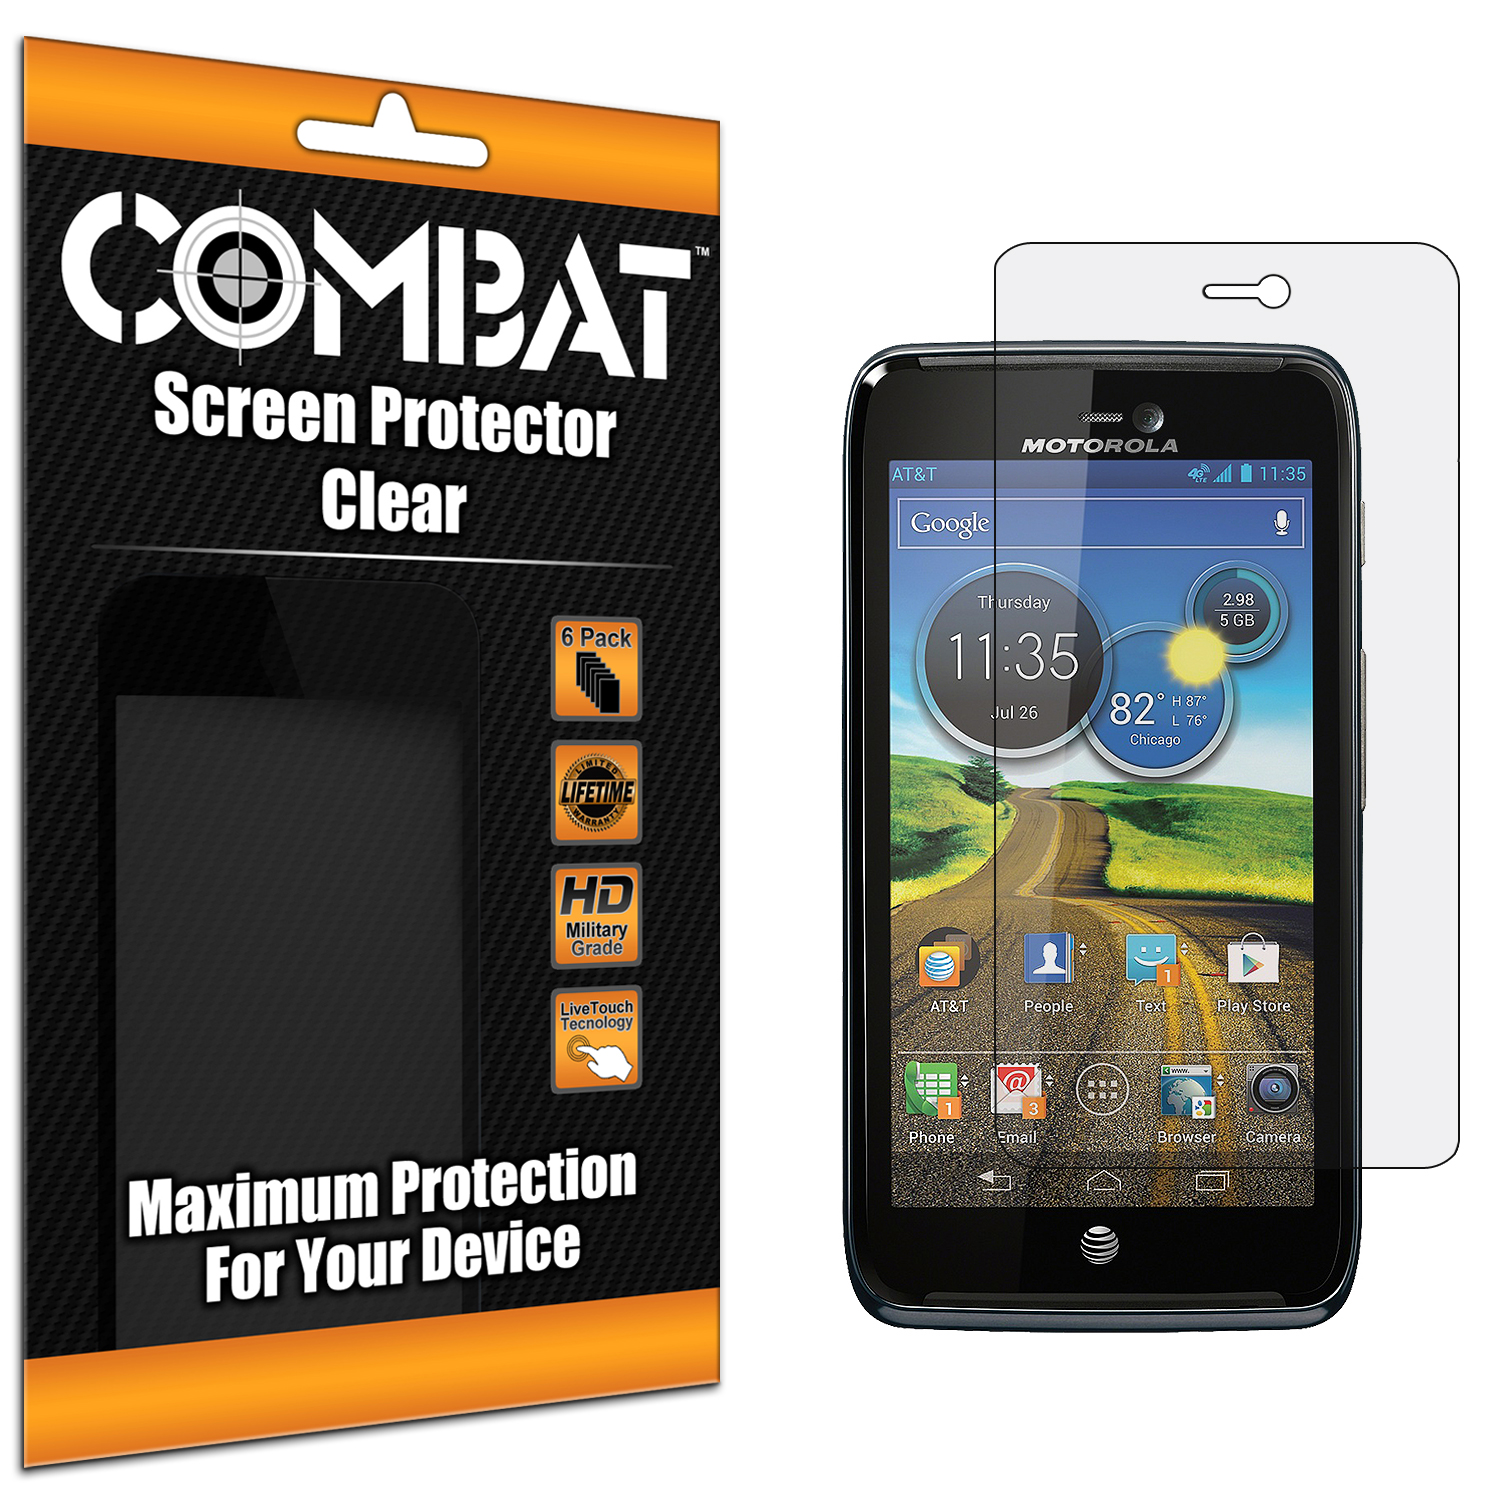 Motorola Atrix HD MB886 Combat 6 Pack HD Clear Screen Protector